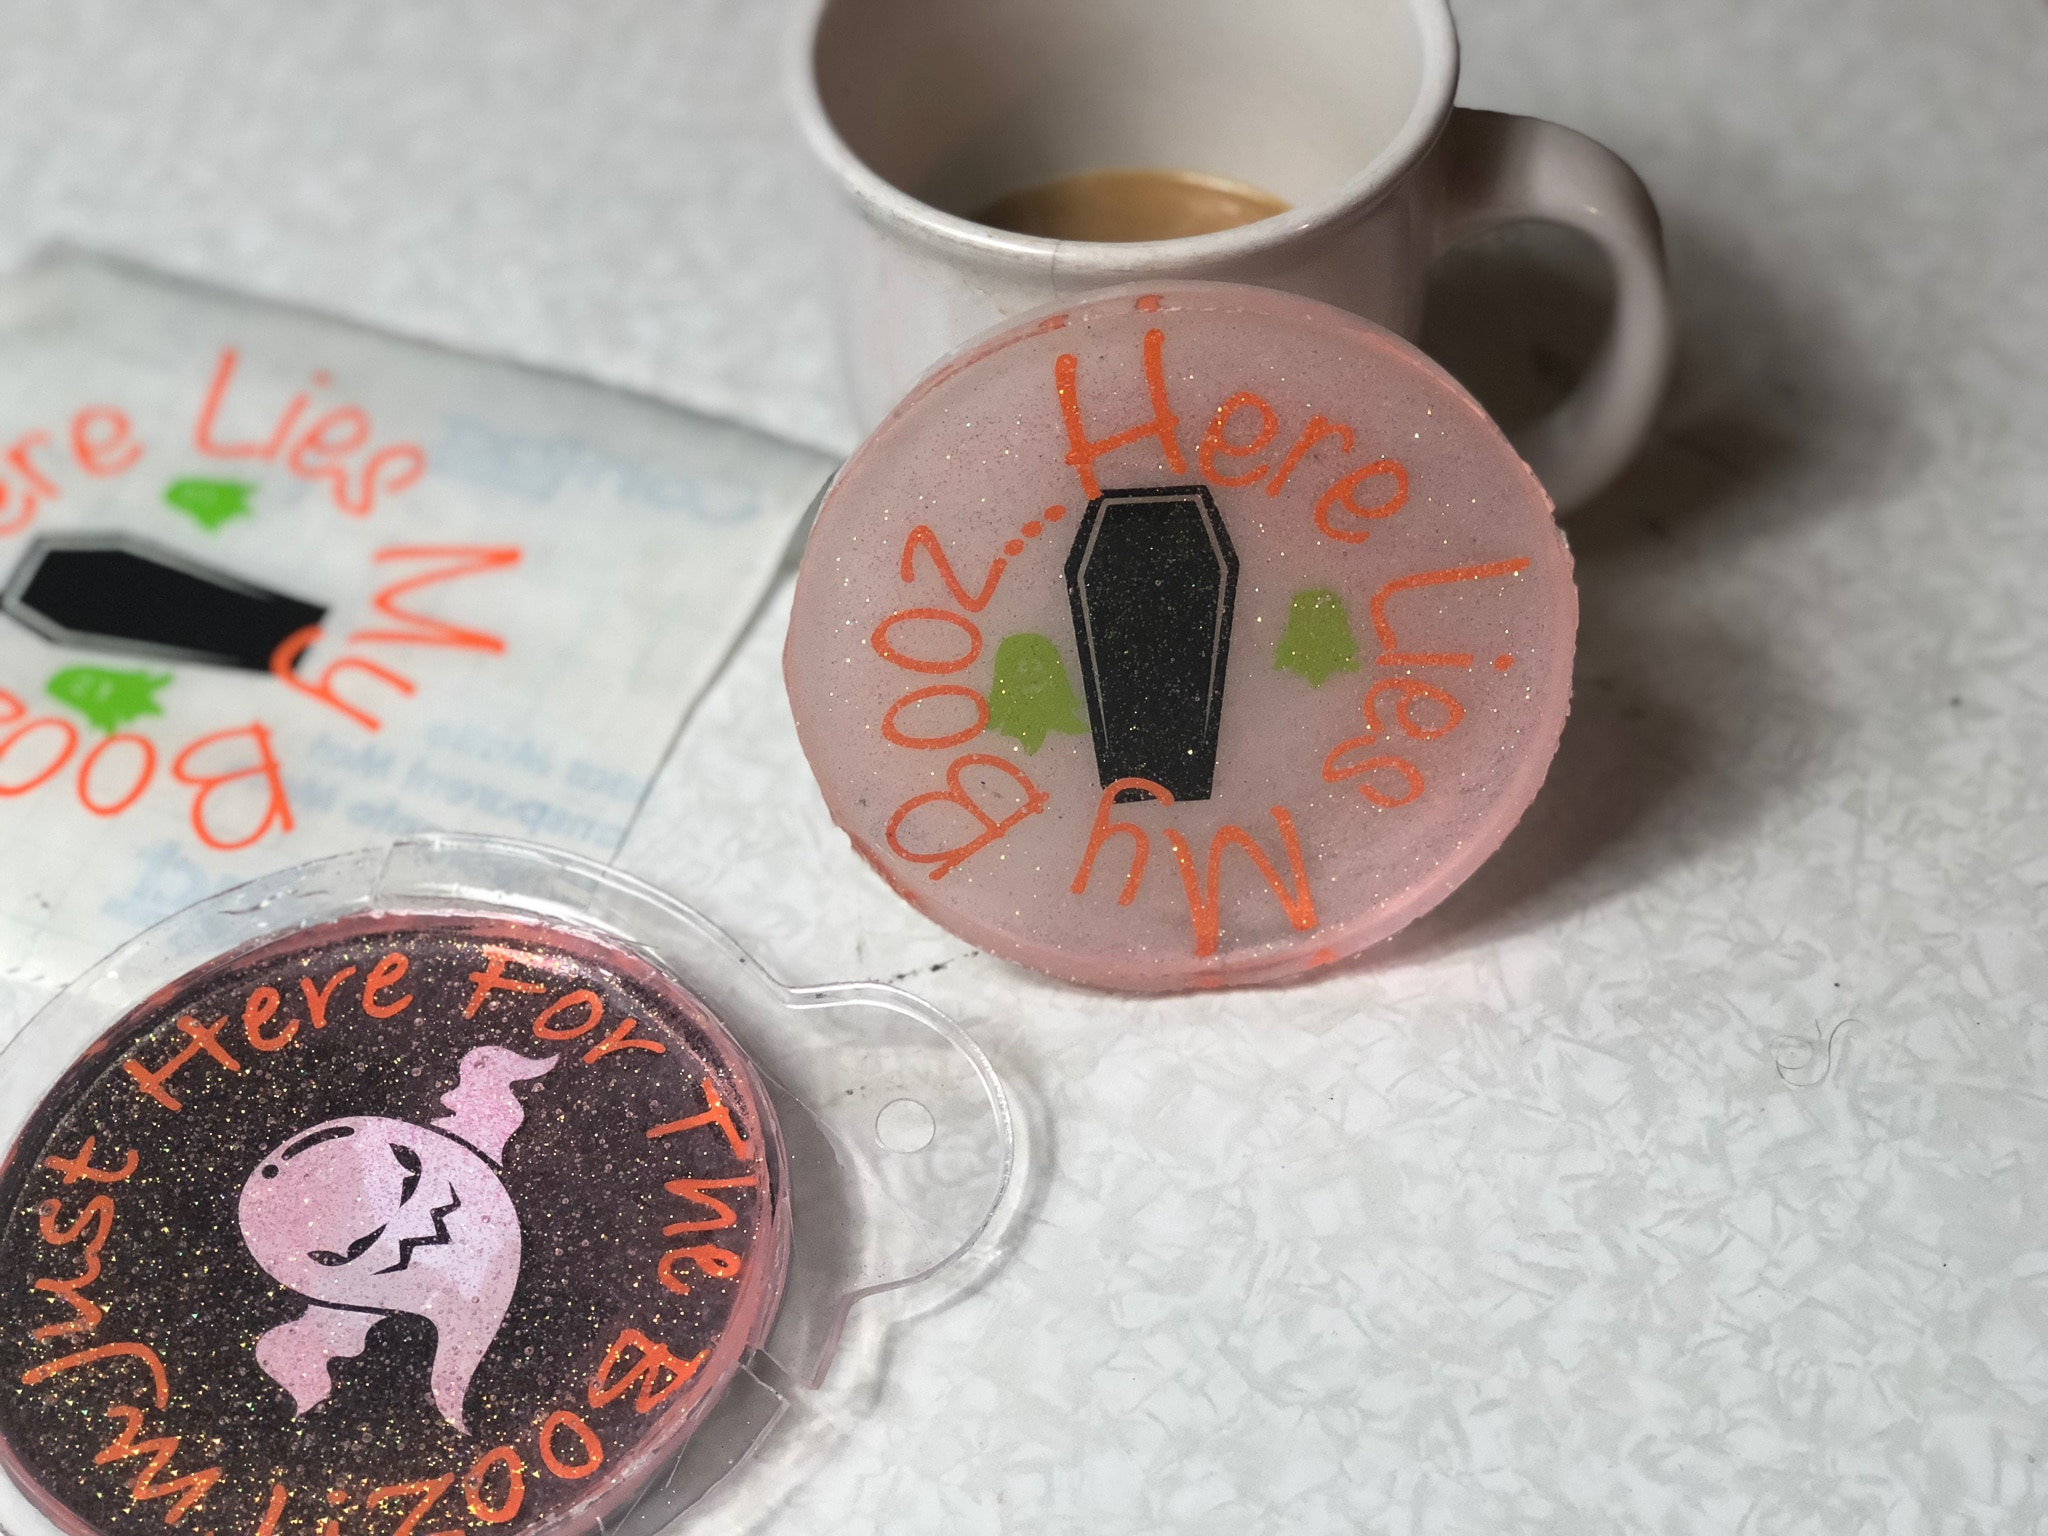 DIY Coasters are one of my favorite projects to make. Not only are they useful but they are a perfect gift to give to friends and family any time of year.